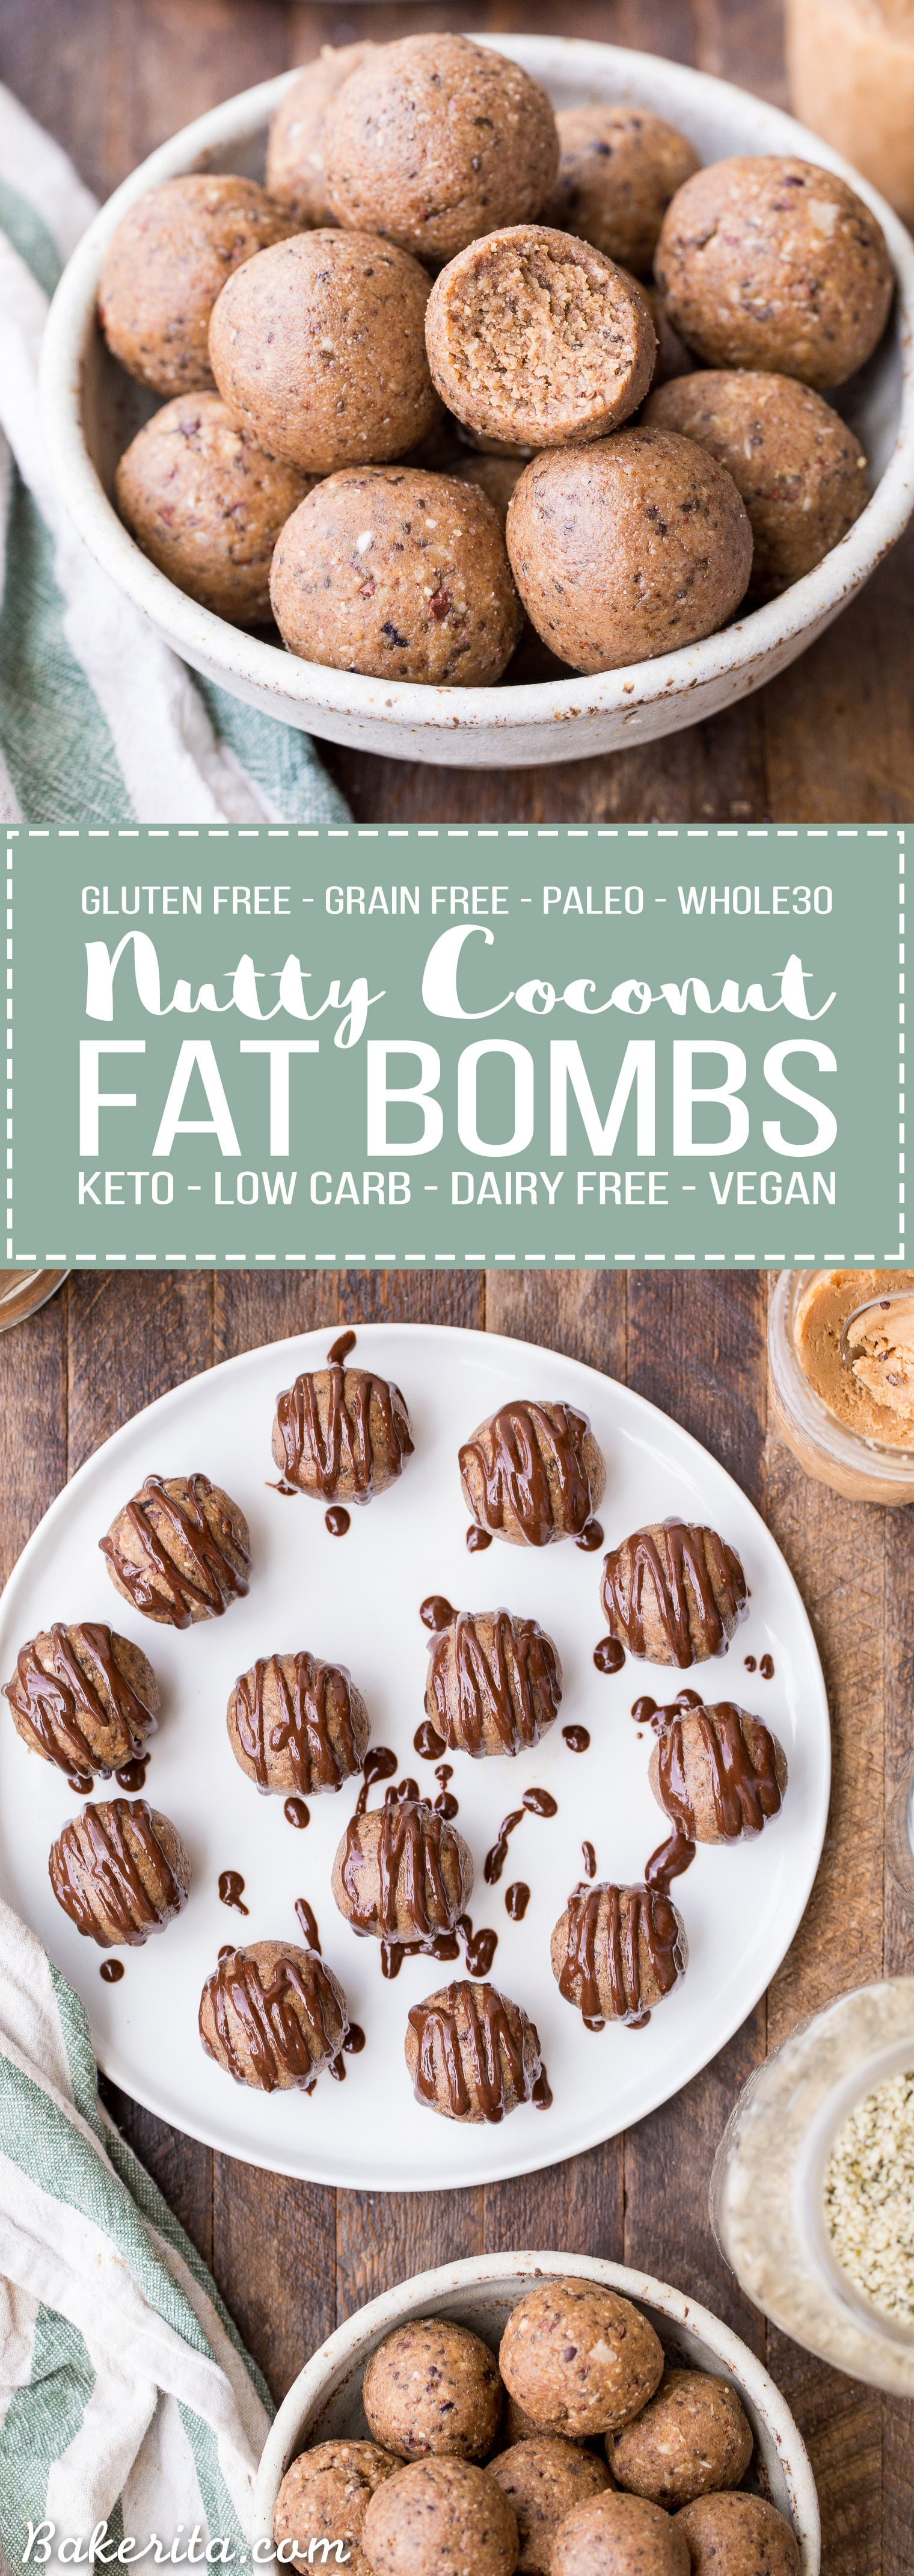 These Nutty Coconut Fat Bombs are an easy-to-make snack that is filling, full of healthy fats, and absolutely delicious! It's a no-bake recipe that's gluten-free, grain-free, paleo, keto, low carb, Whole30-friendly, and vegan.